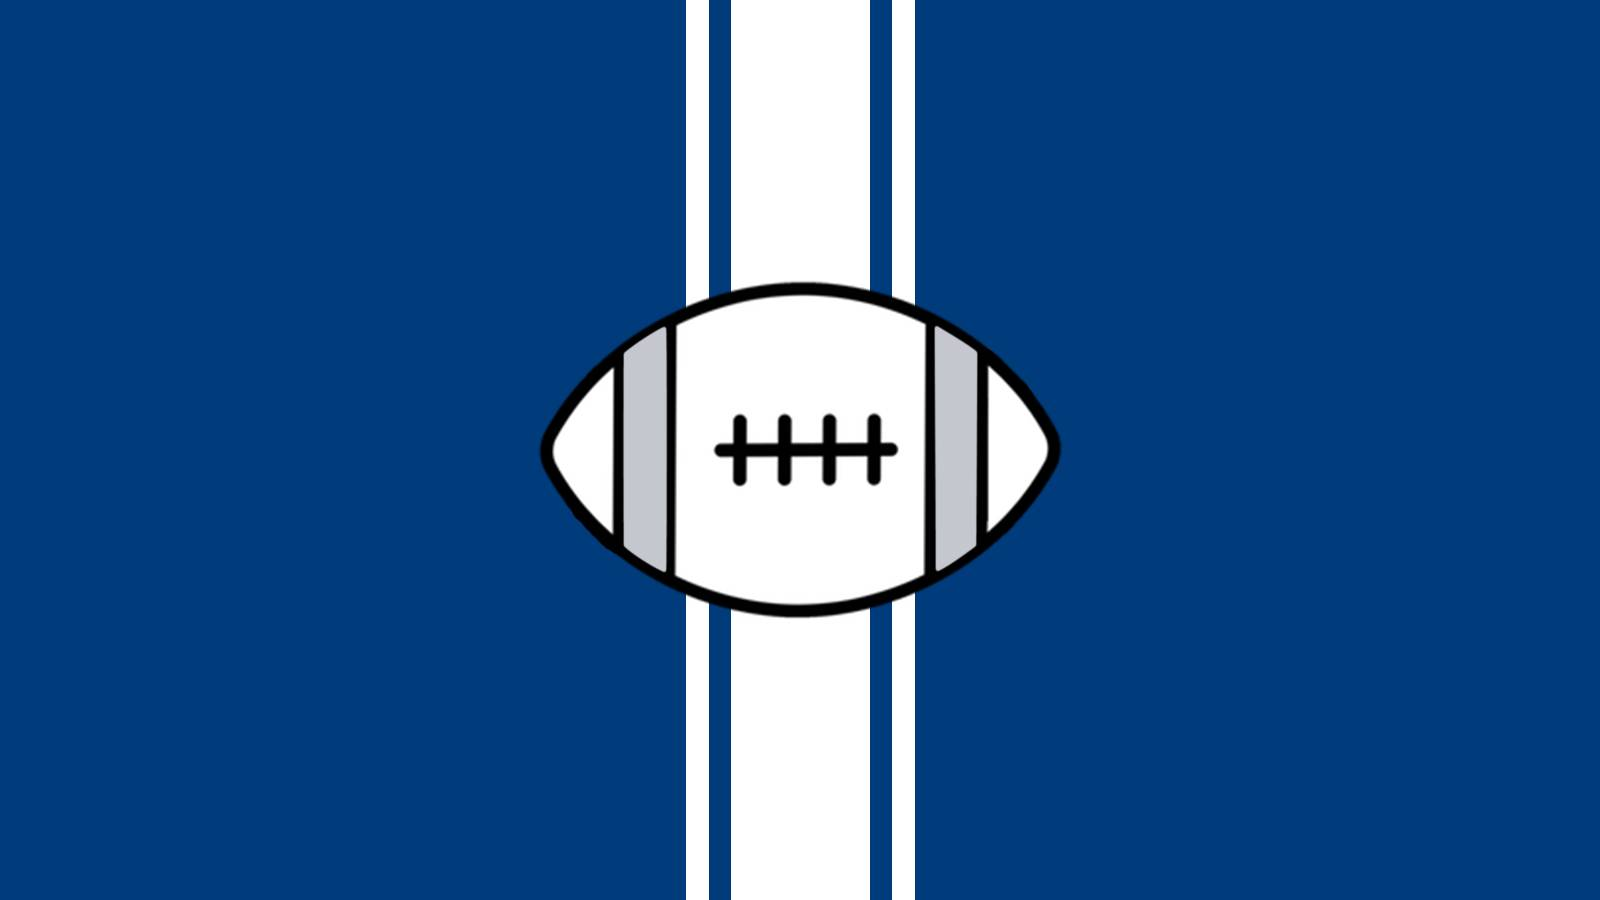 Green Bay Packers at Indianapolis Colts